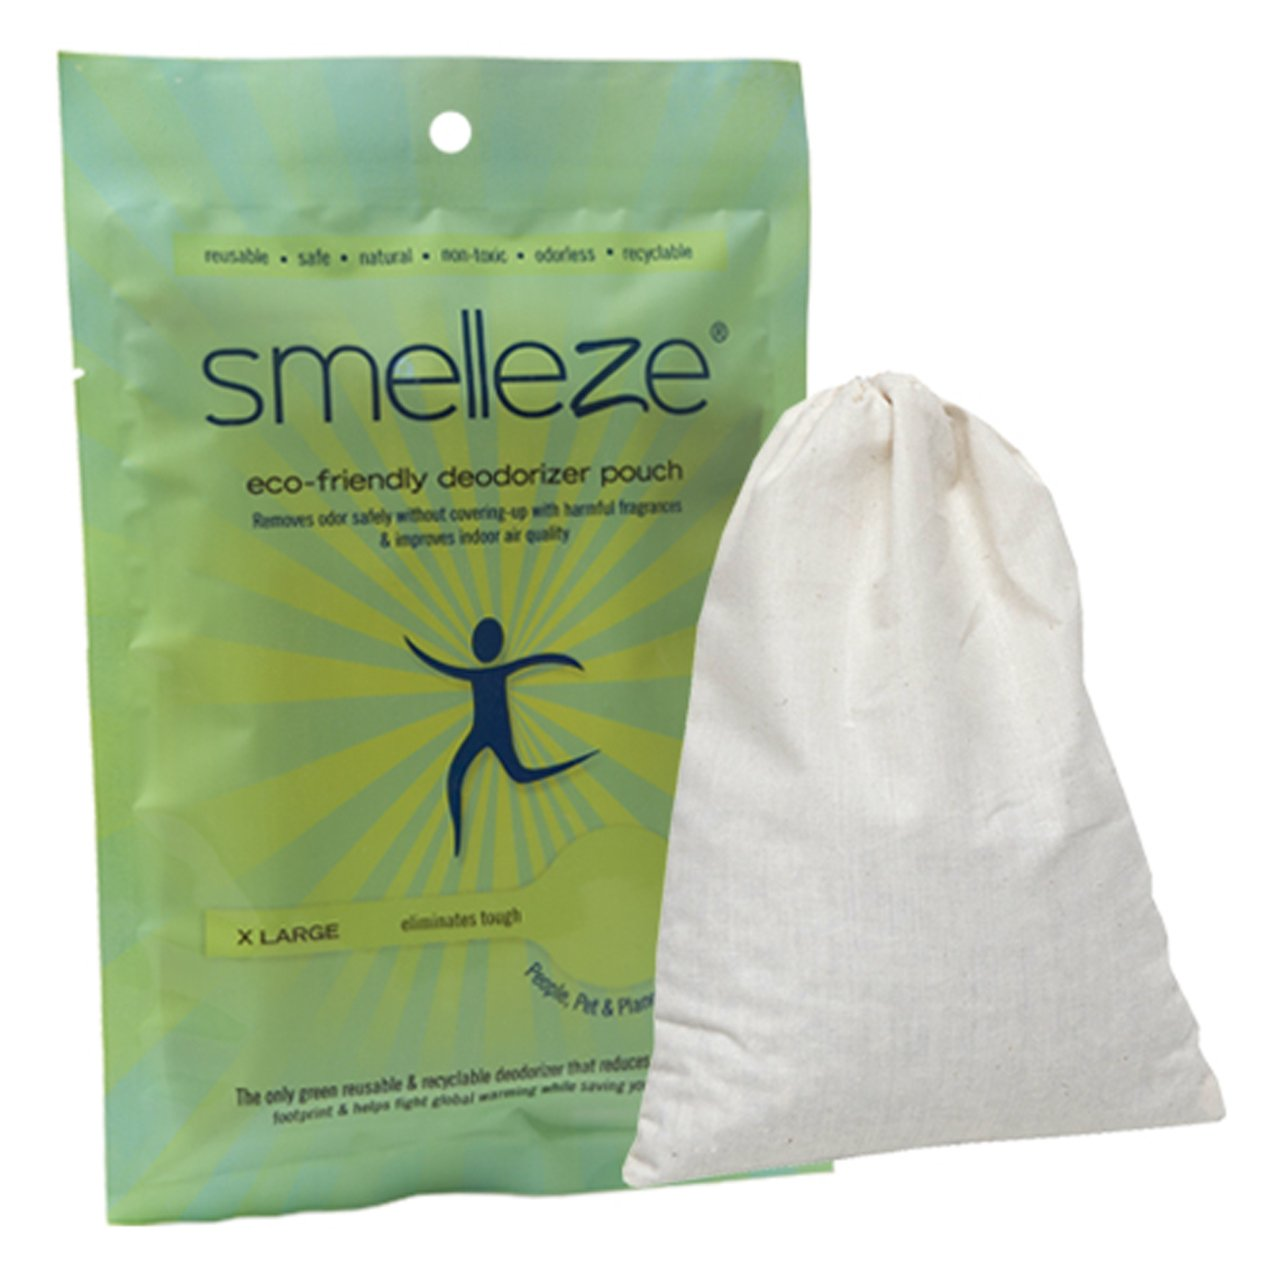 SMELLEZE Reusable Printing Smell Removal Deodorizer Pouch: Rids Odor Without Chemicals in 300 Sq. Ft. IMTEK Environmental Corp.